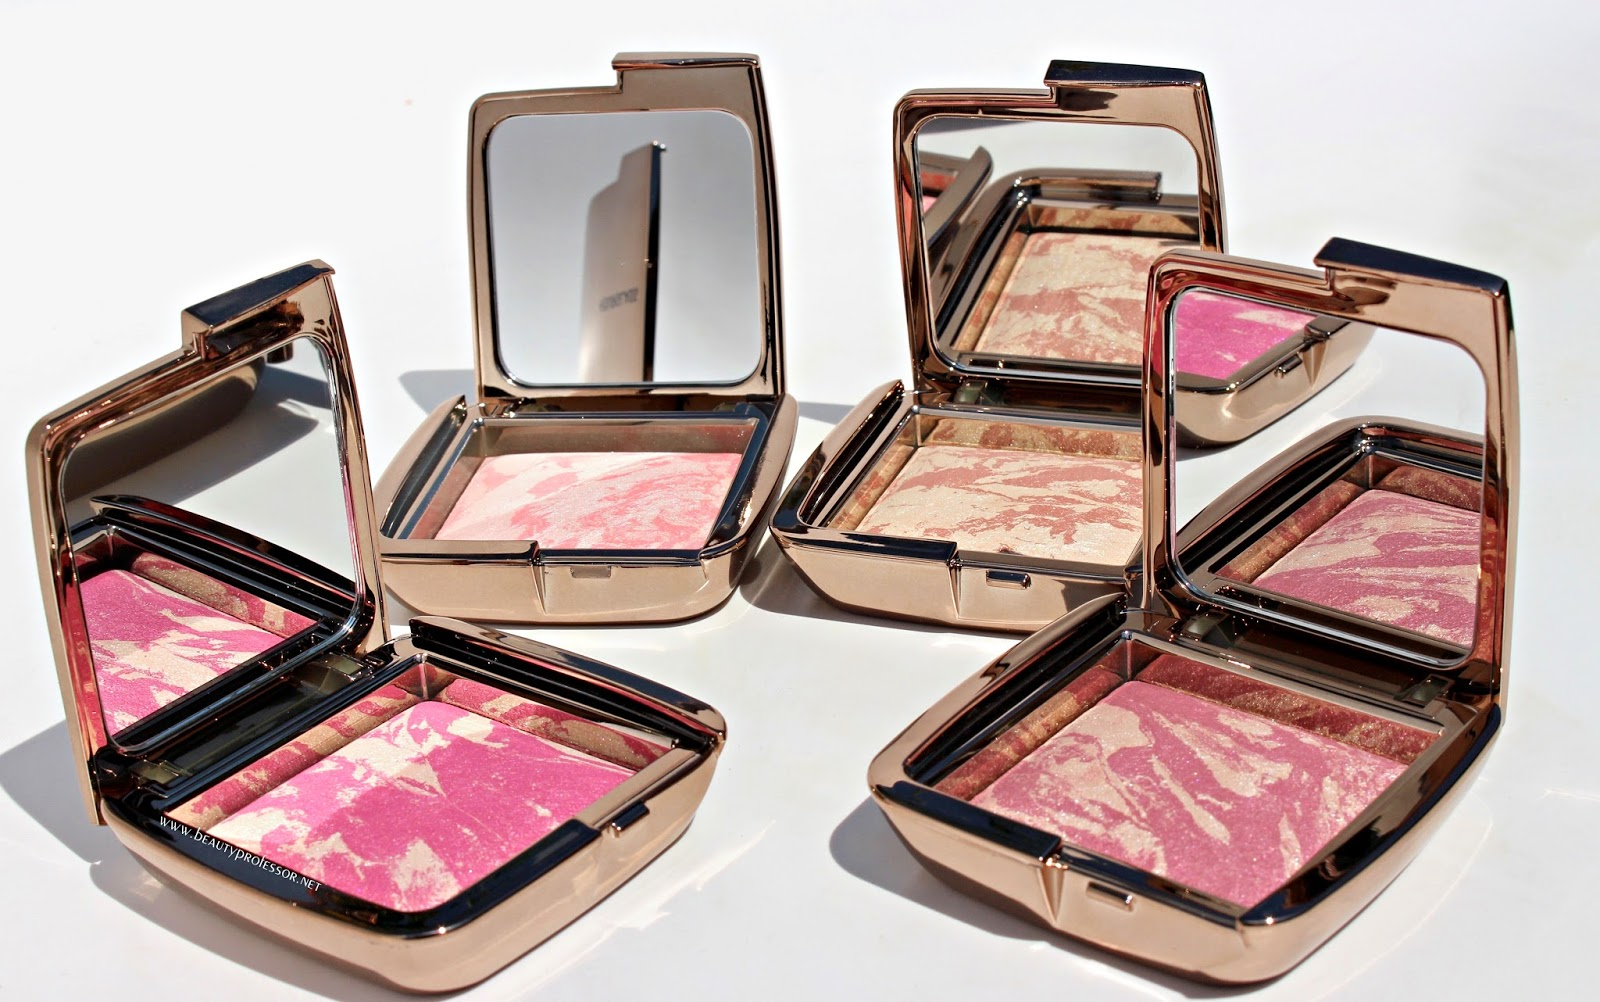 Grandelash Hourglass And Foundation Oh My Major Newness At Lock It Cushion Lip Pen 10 Nudi Beige The Four Shades Of Ambient Strobe Lighting Blush Official Details Courtesy Sephora What Is A Captivating That Combines